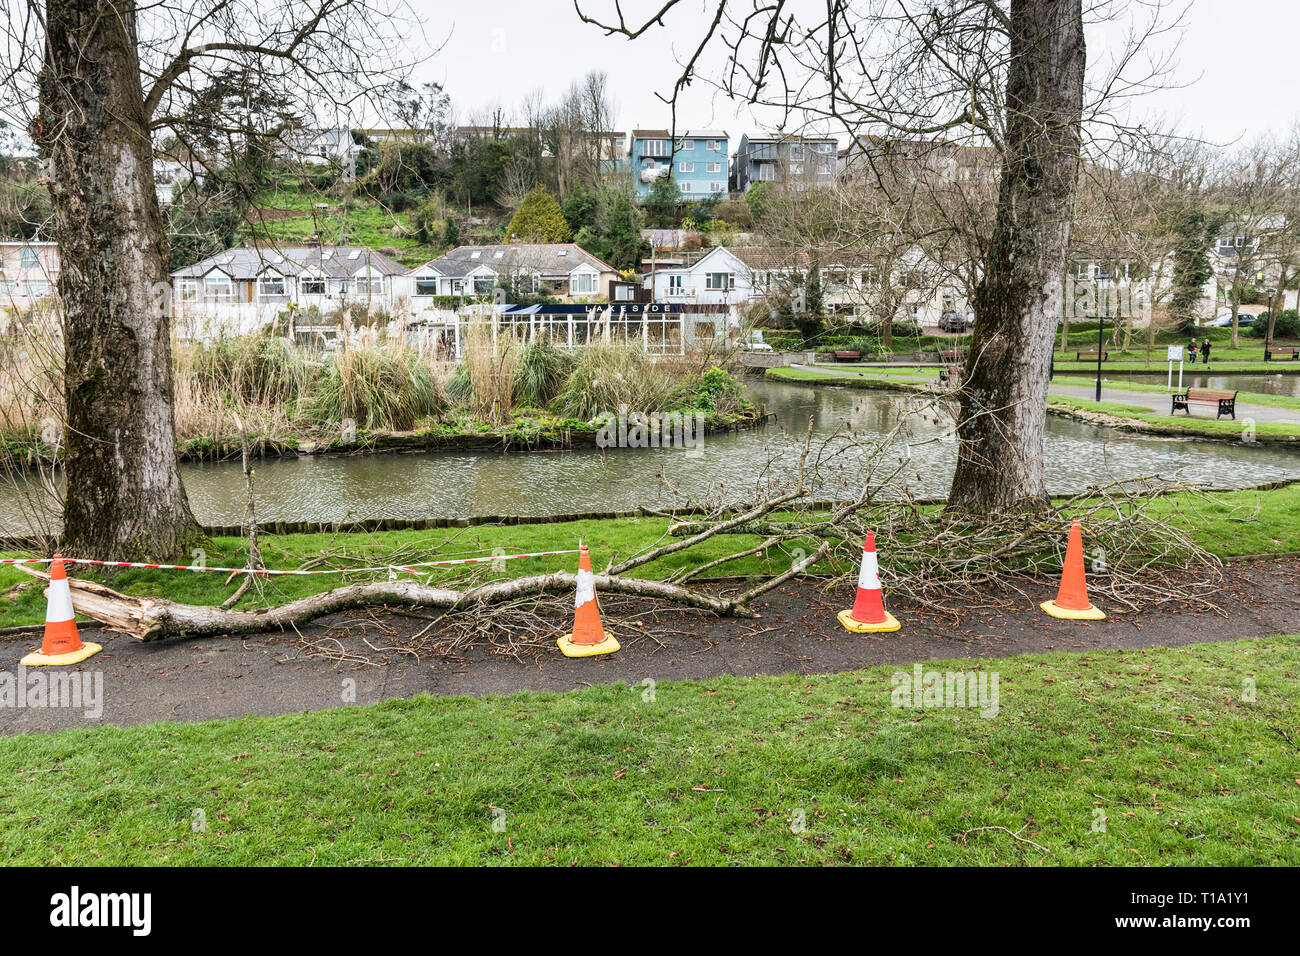 Cones used to cordon off fallen tree branches in Trenance Park in Newquay Cornwall. - Stock Image